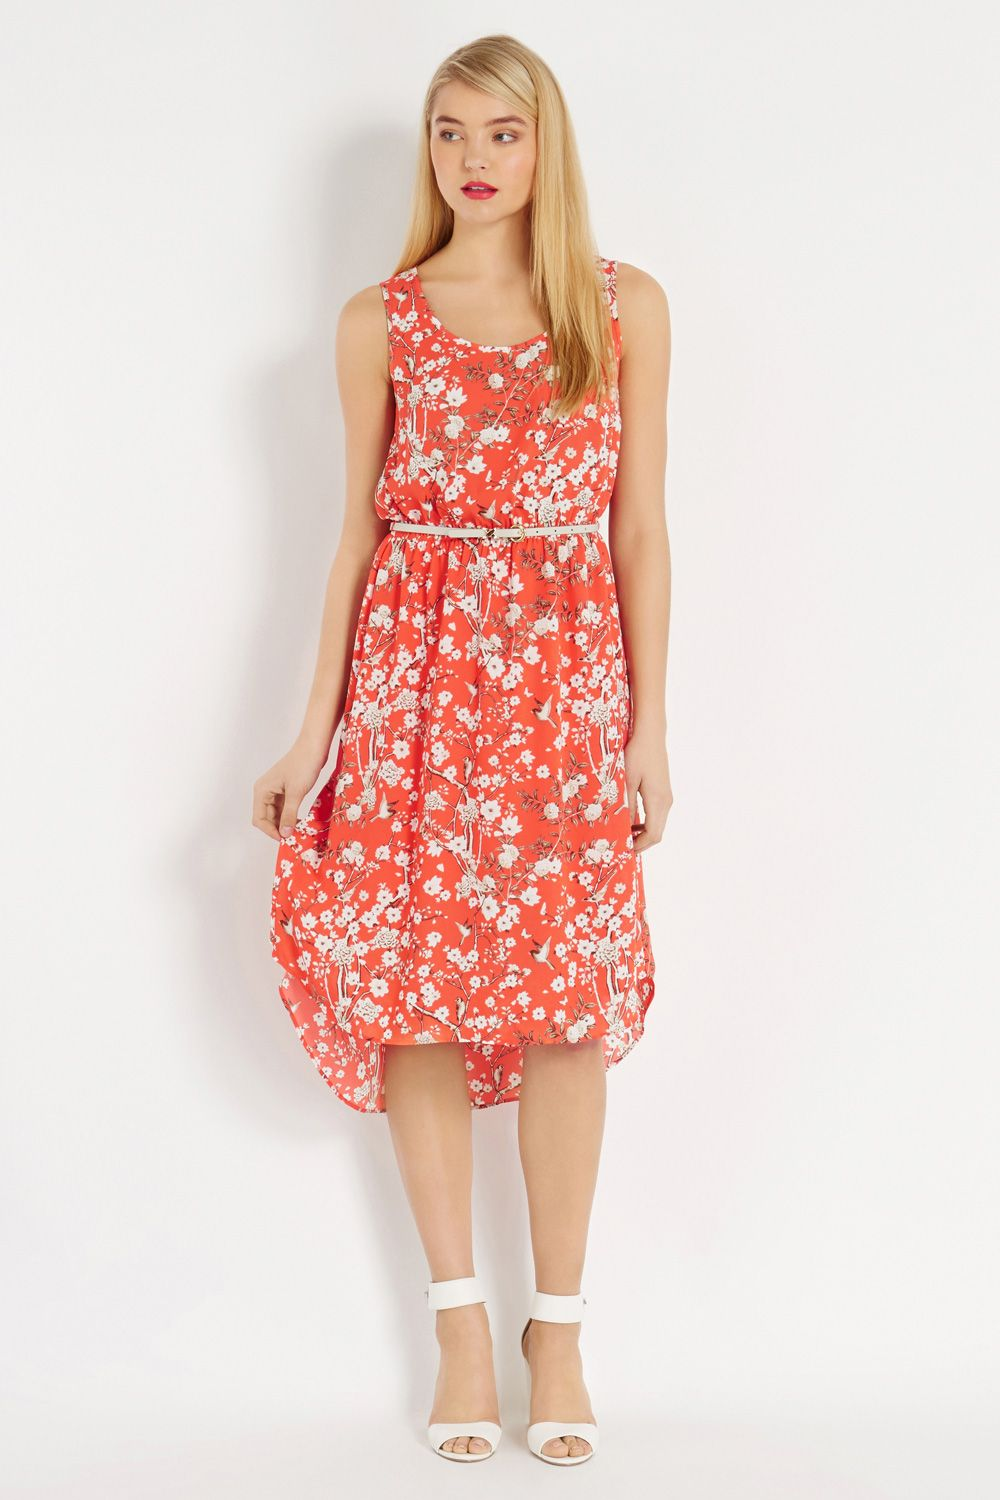 Japanese blossom midi dress